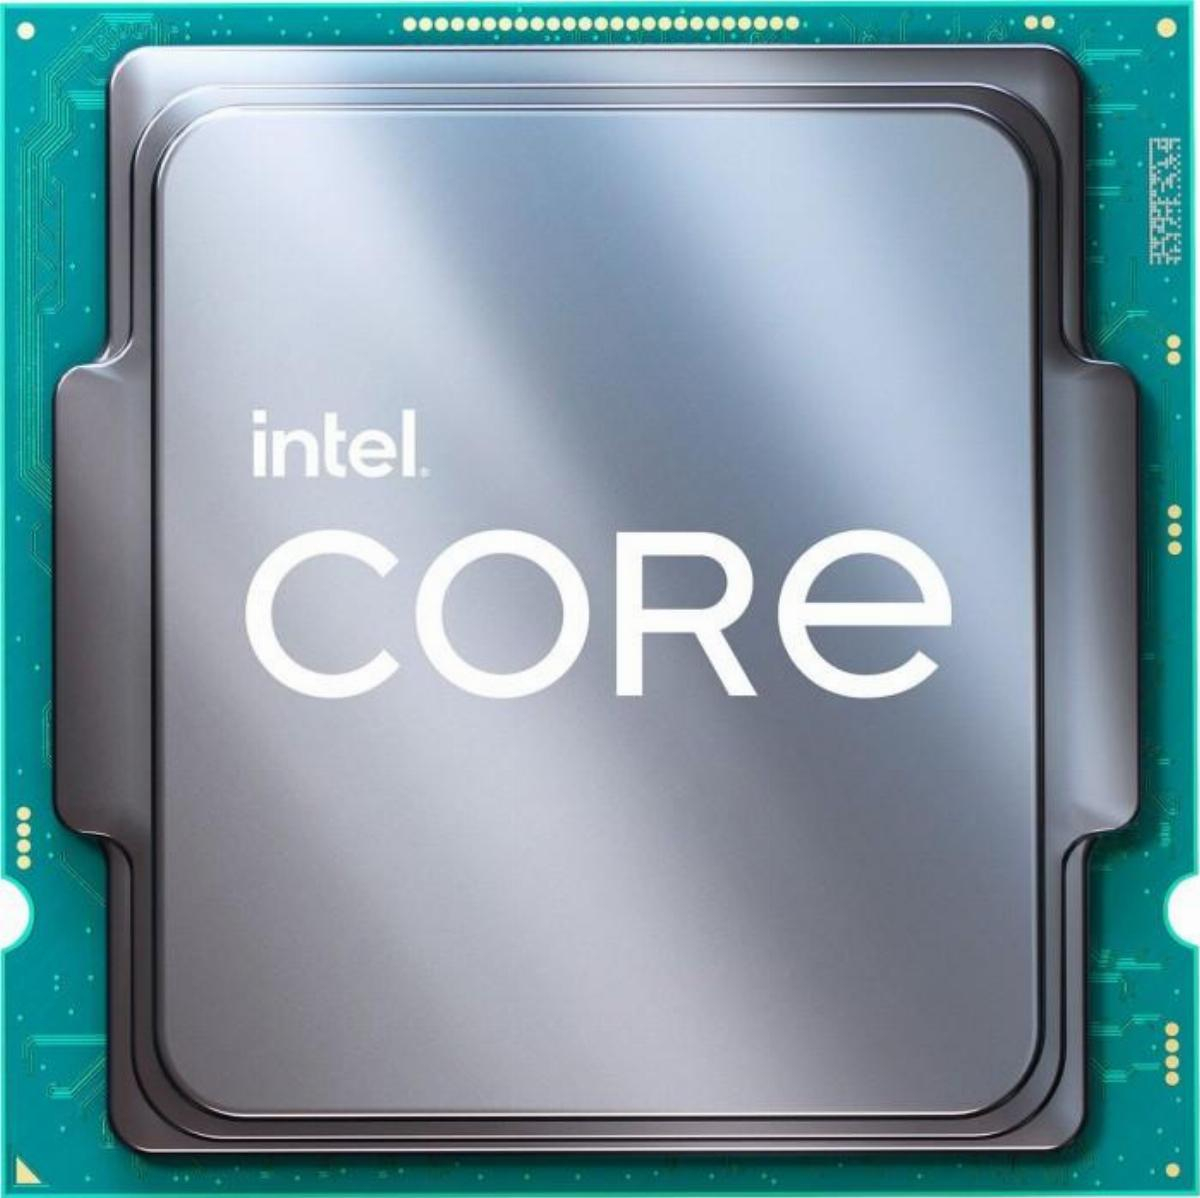 Процесор Intel Core i5-11400F (2.60Ghz Up to 4.40Ghz, 12MB, 65W, LGA1200) TRAY